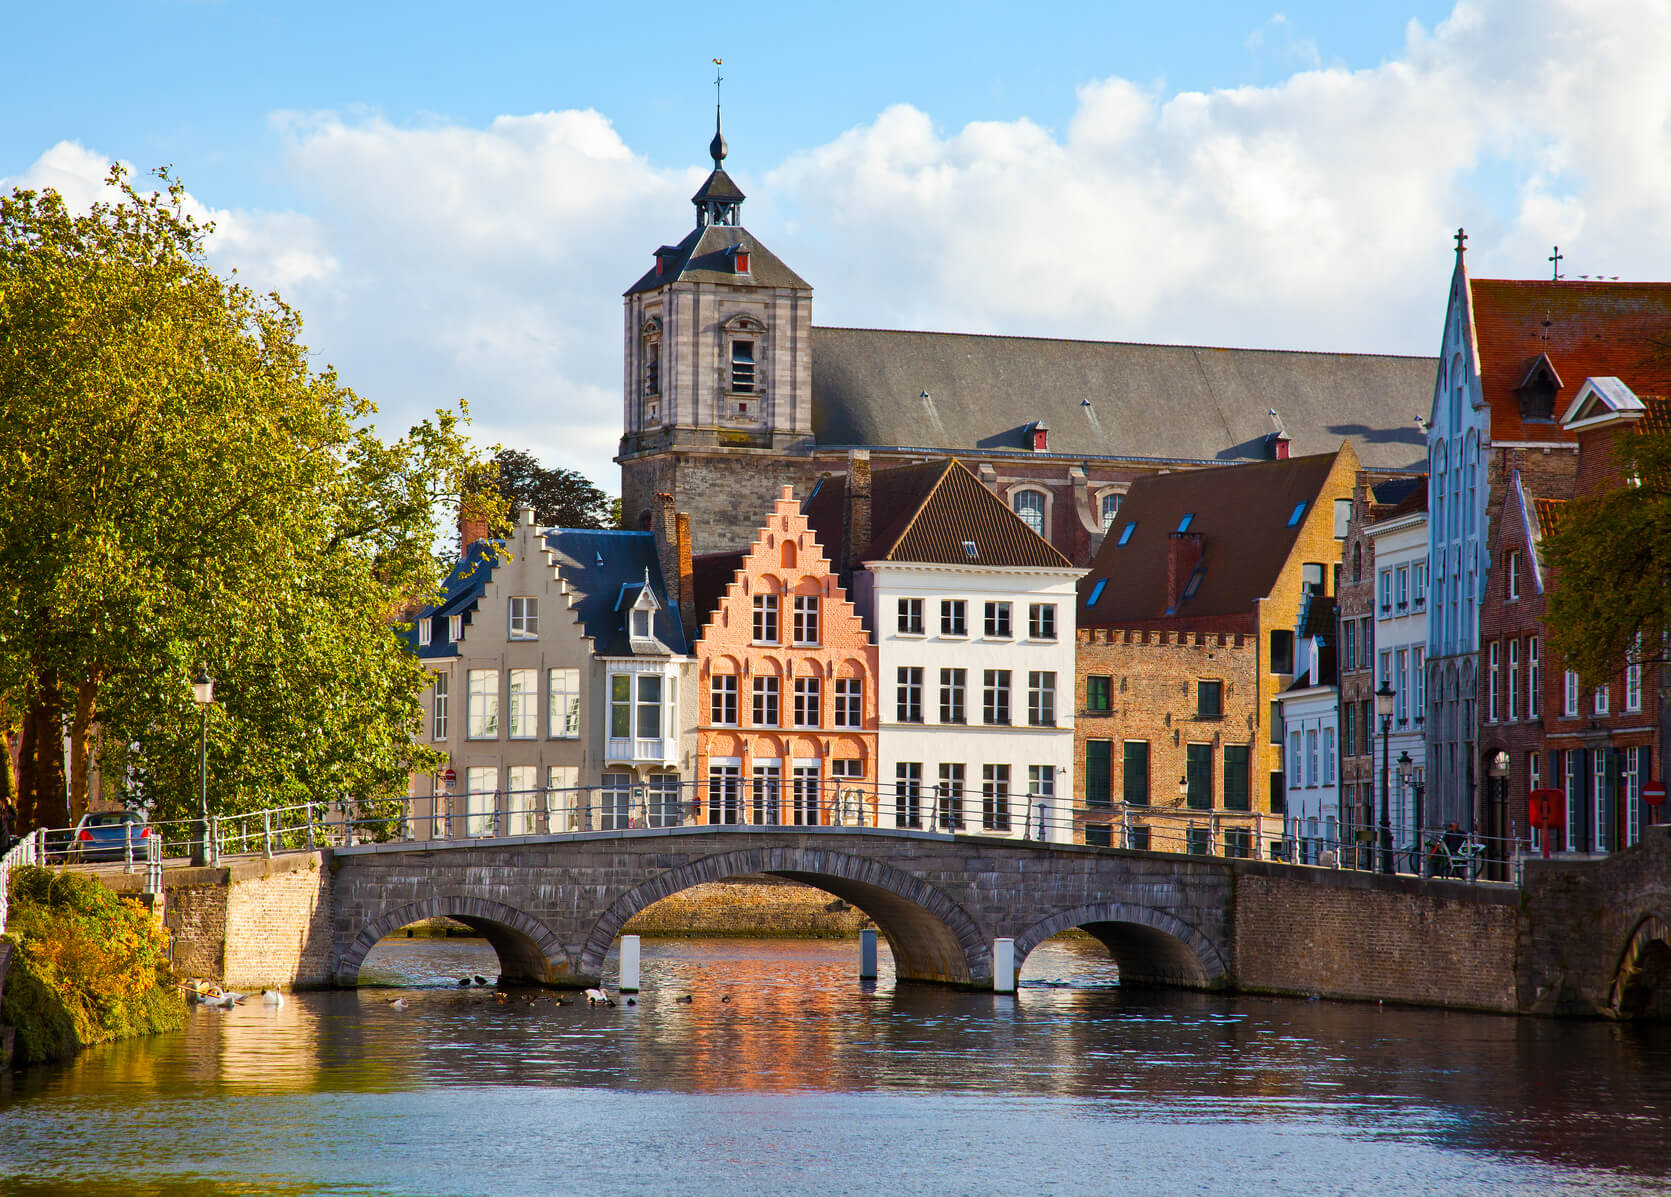 HOT!! SUMMER: Hamburg, Germany to Brussels, Belgium (& vice versa) for only 99 Cents roundtrip